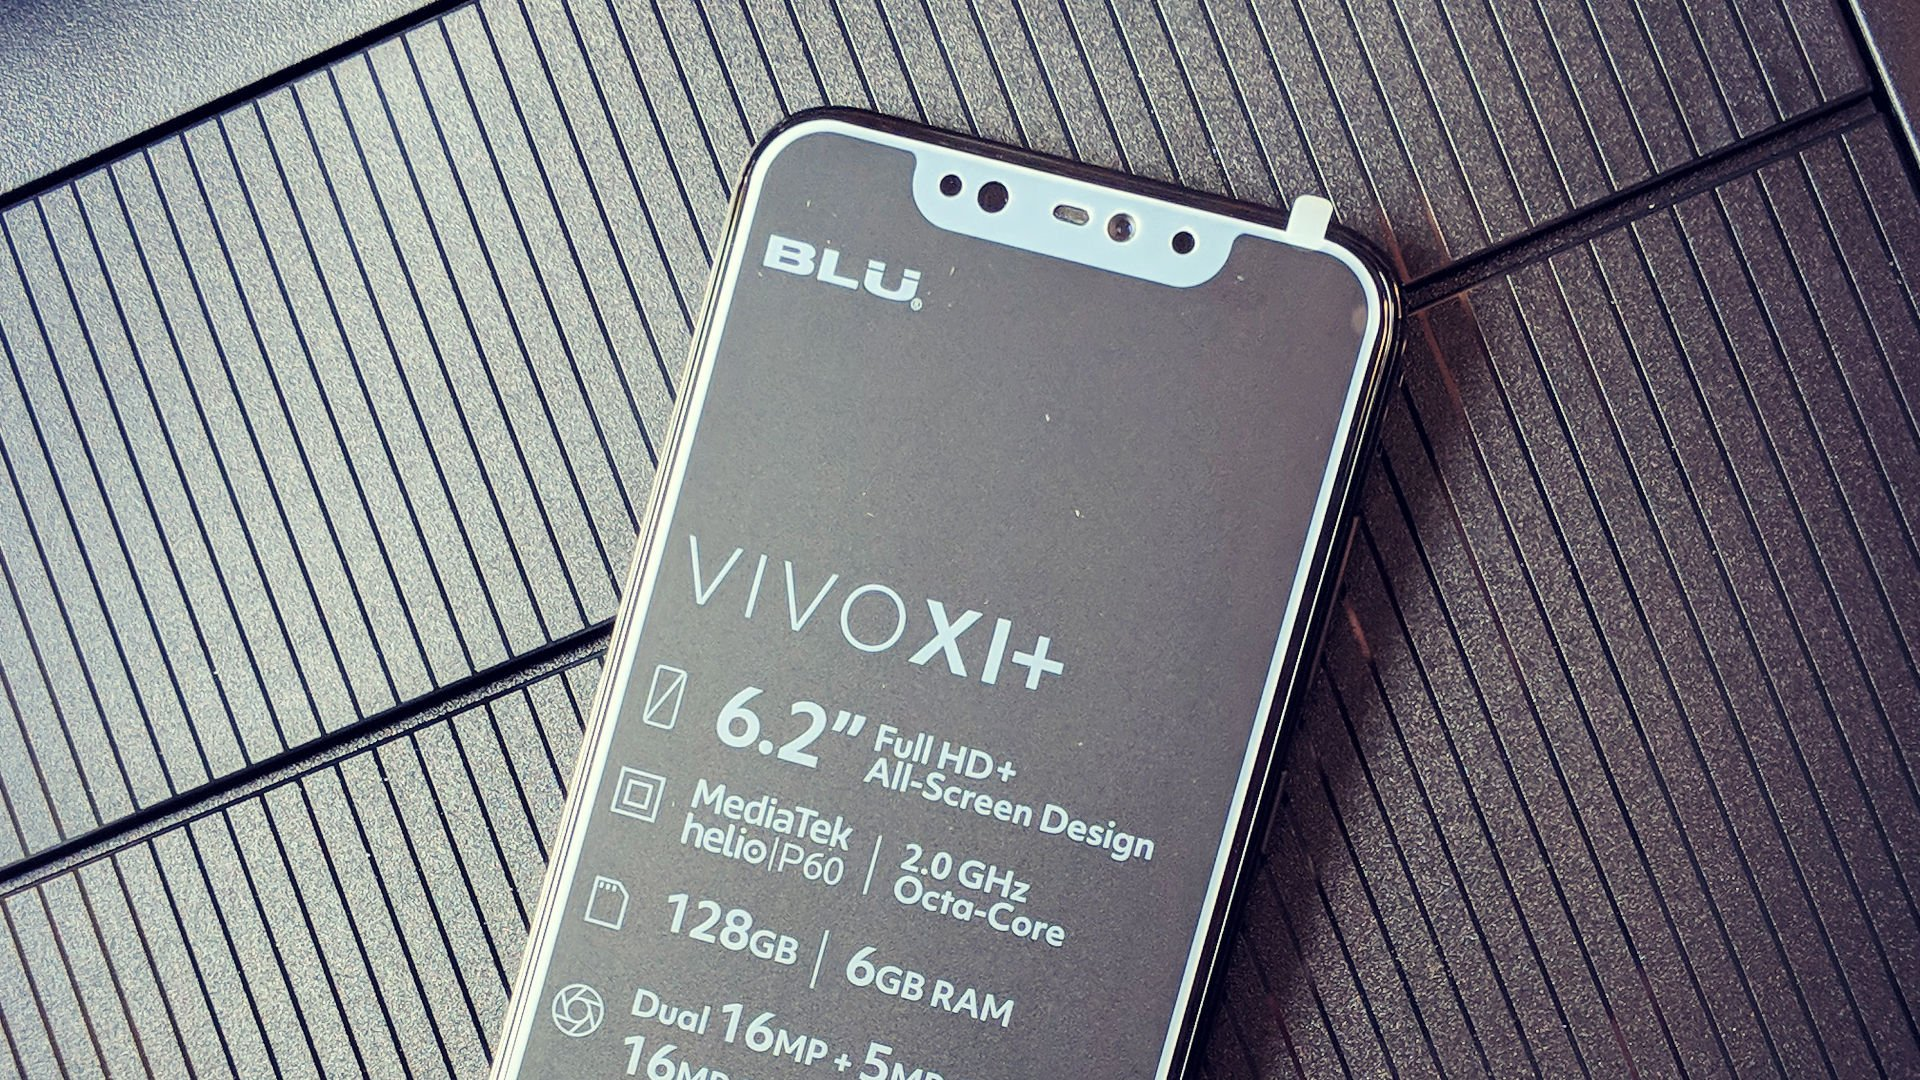 982830dde What makes the Vivo XI+ so different? For starters there are a number of  firsts in this phone. But, before we get into the hardware let's talk about  the new ...